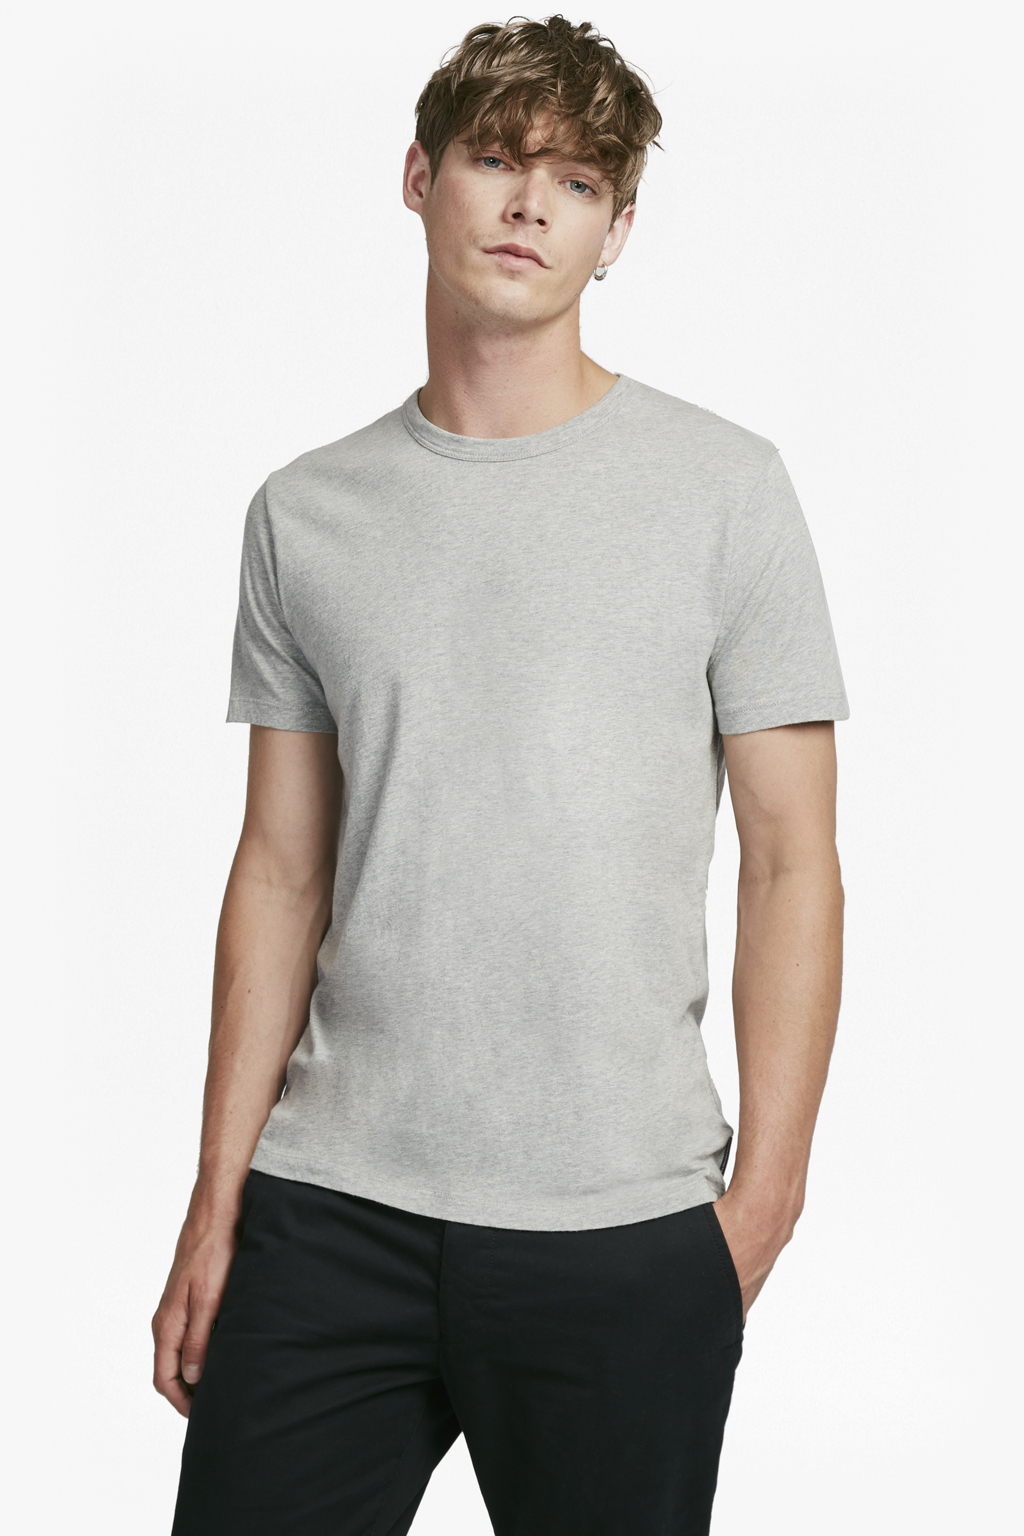 French Connection Mens Short Sleeve Crew Neck Regular Fit Graphic T-Shirt